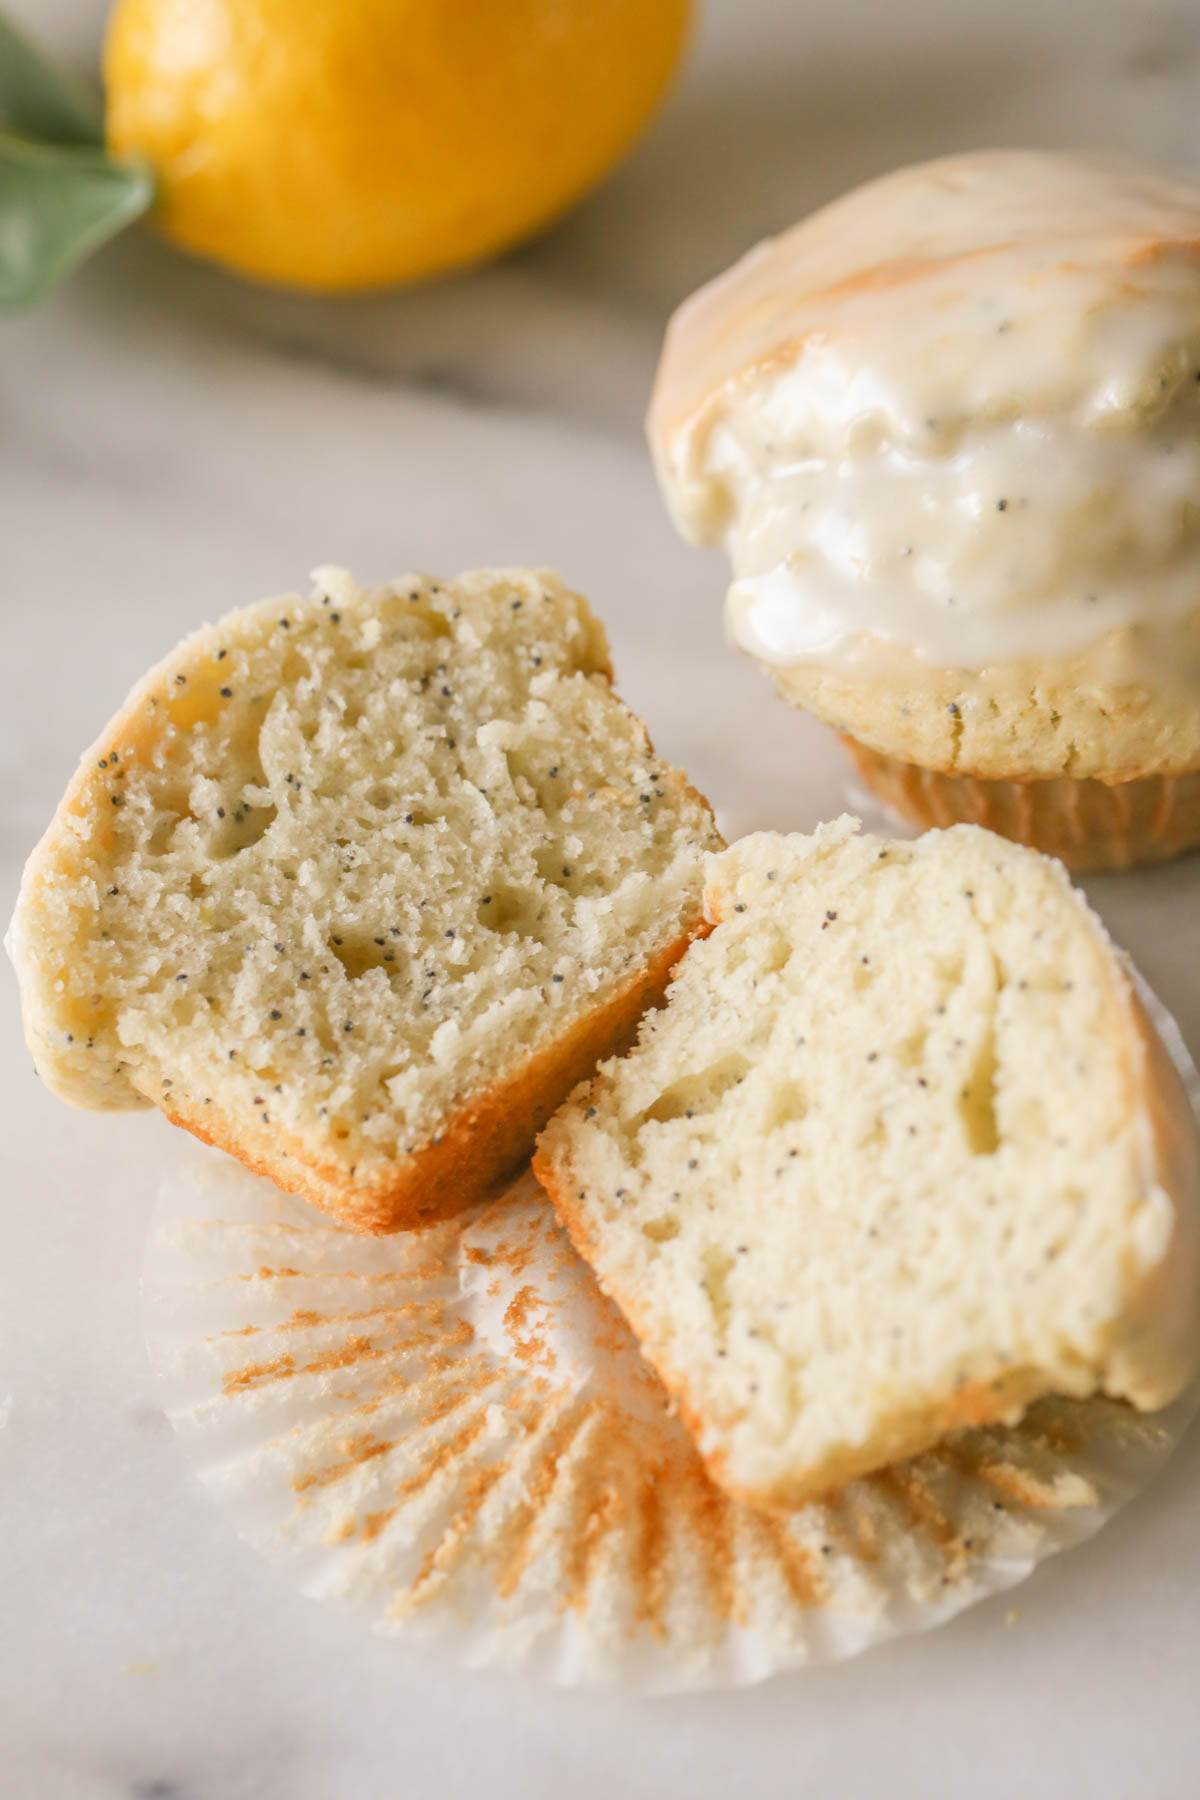 A Glazed Lemon Poppy Seed Muffin sliced in half, placed on the muffin liner, with another whole muffin next to it and a whole lemon in the background.